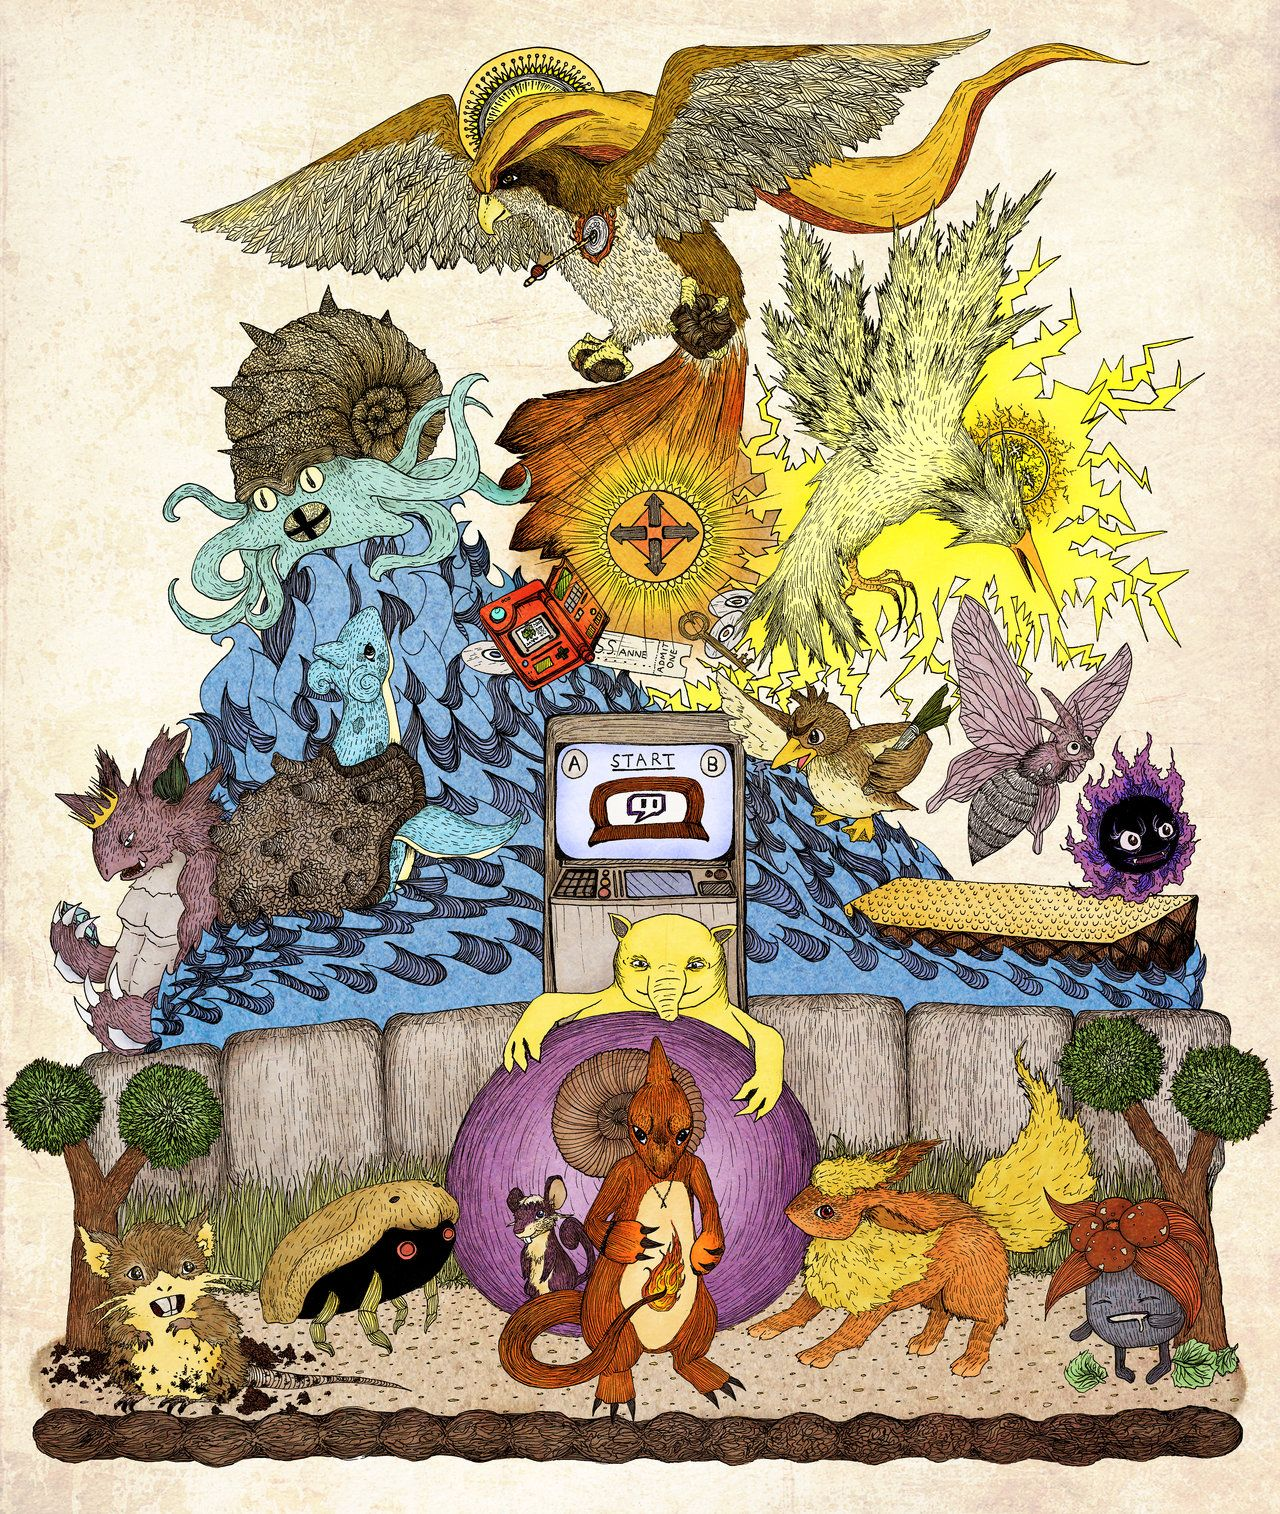 twitch plays pokemon red color by engraven praise helix